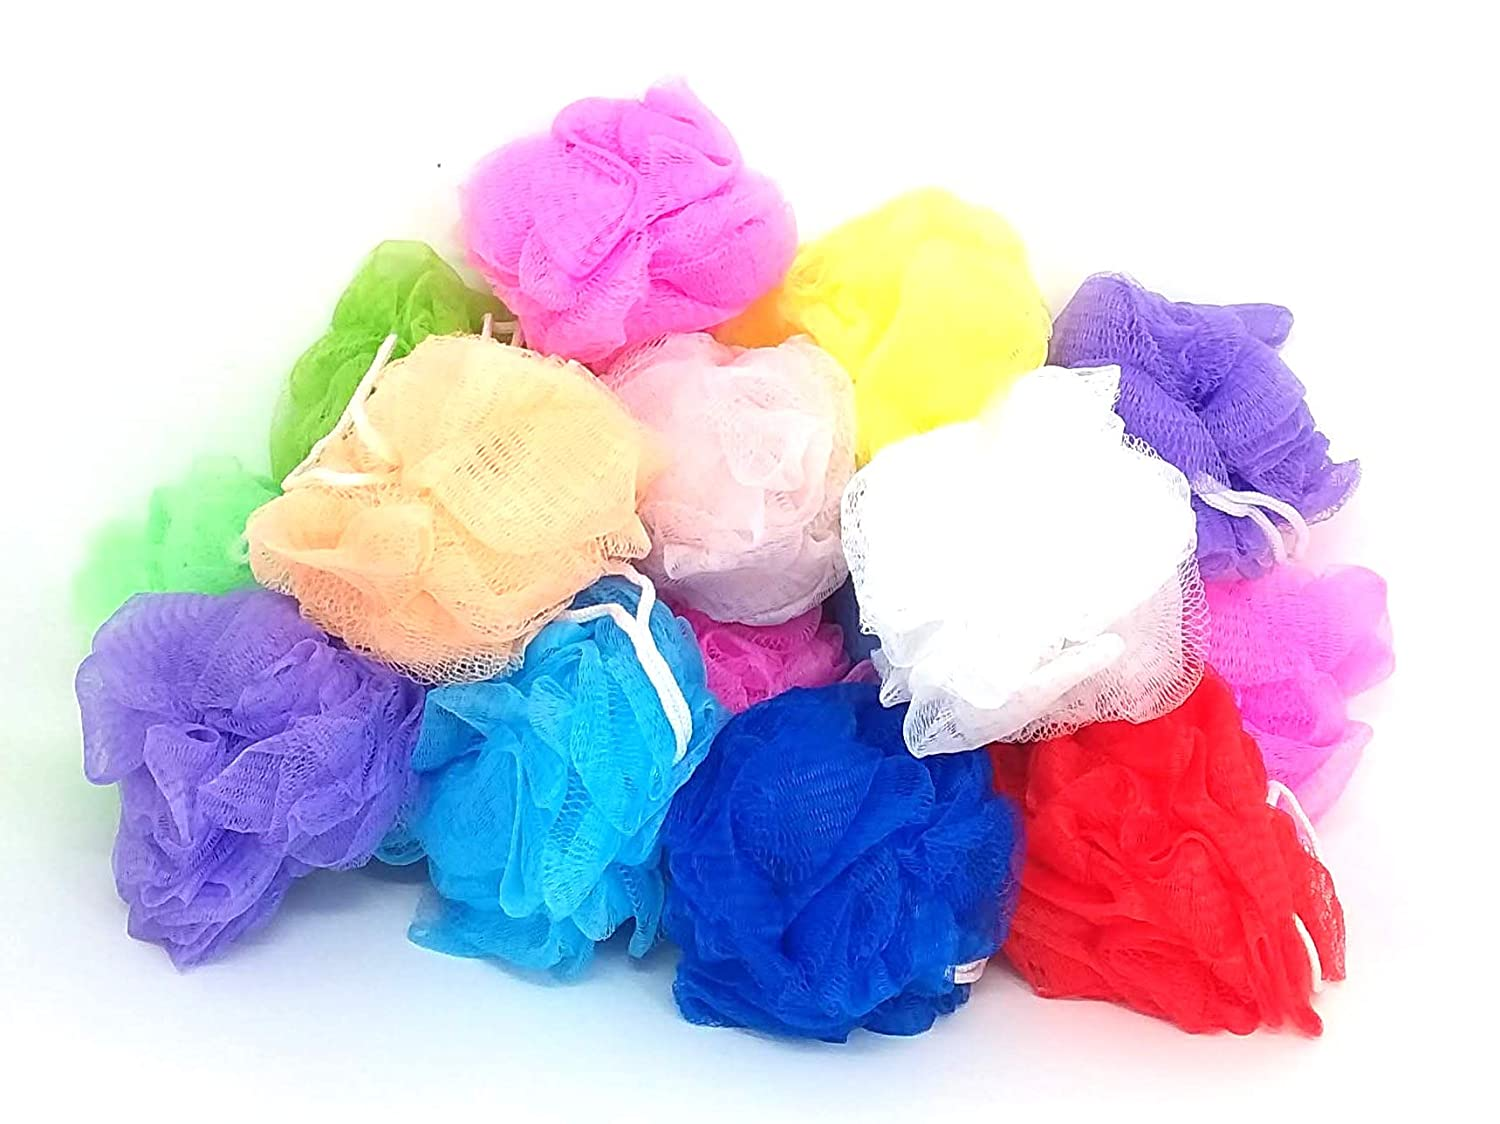 20 Bath or Shower Sponge Loofahs Pouf Large 4 inch Mesh Assorted Colors WHOLESALE BULK LOT Chachlili